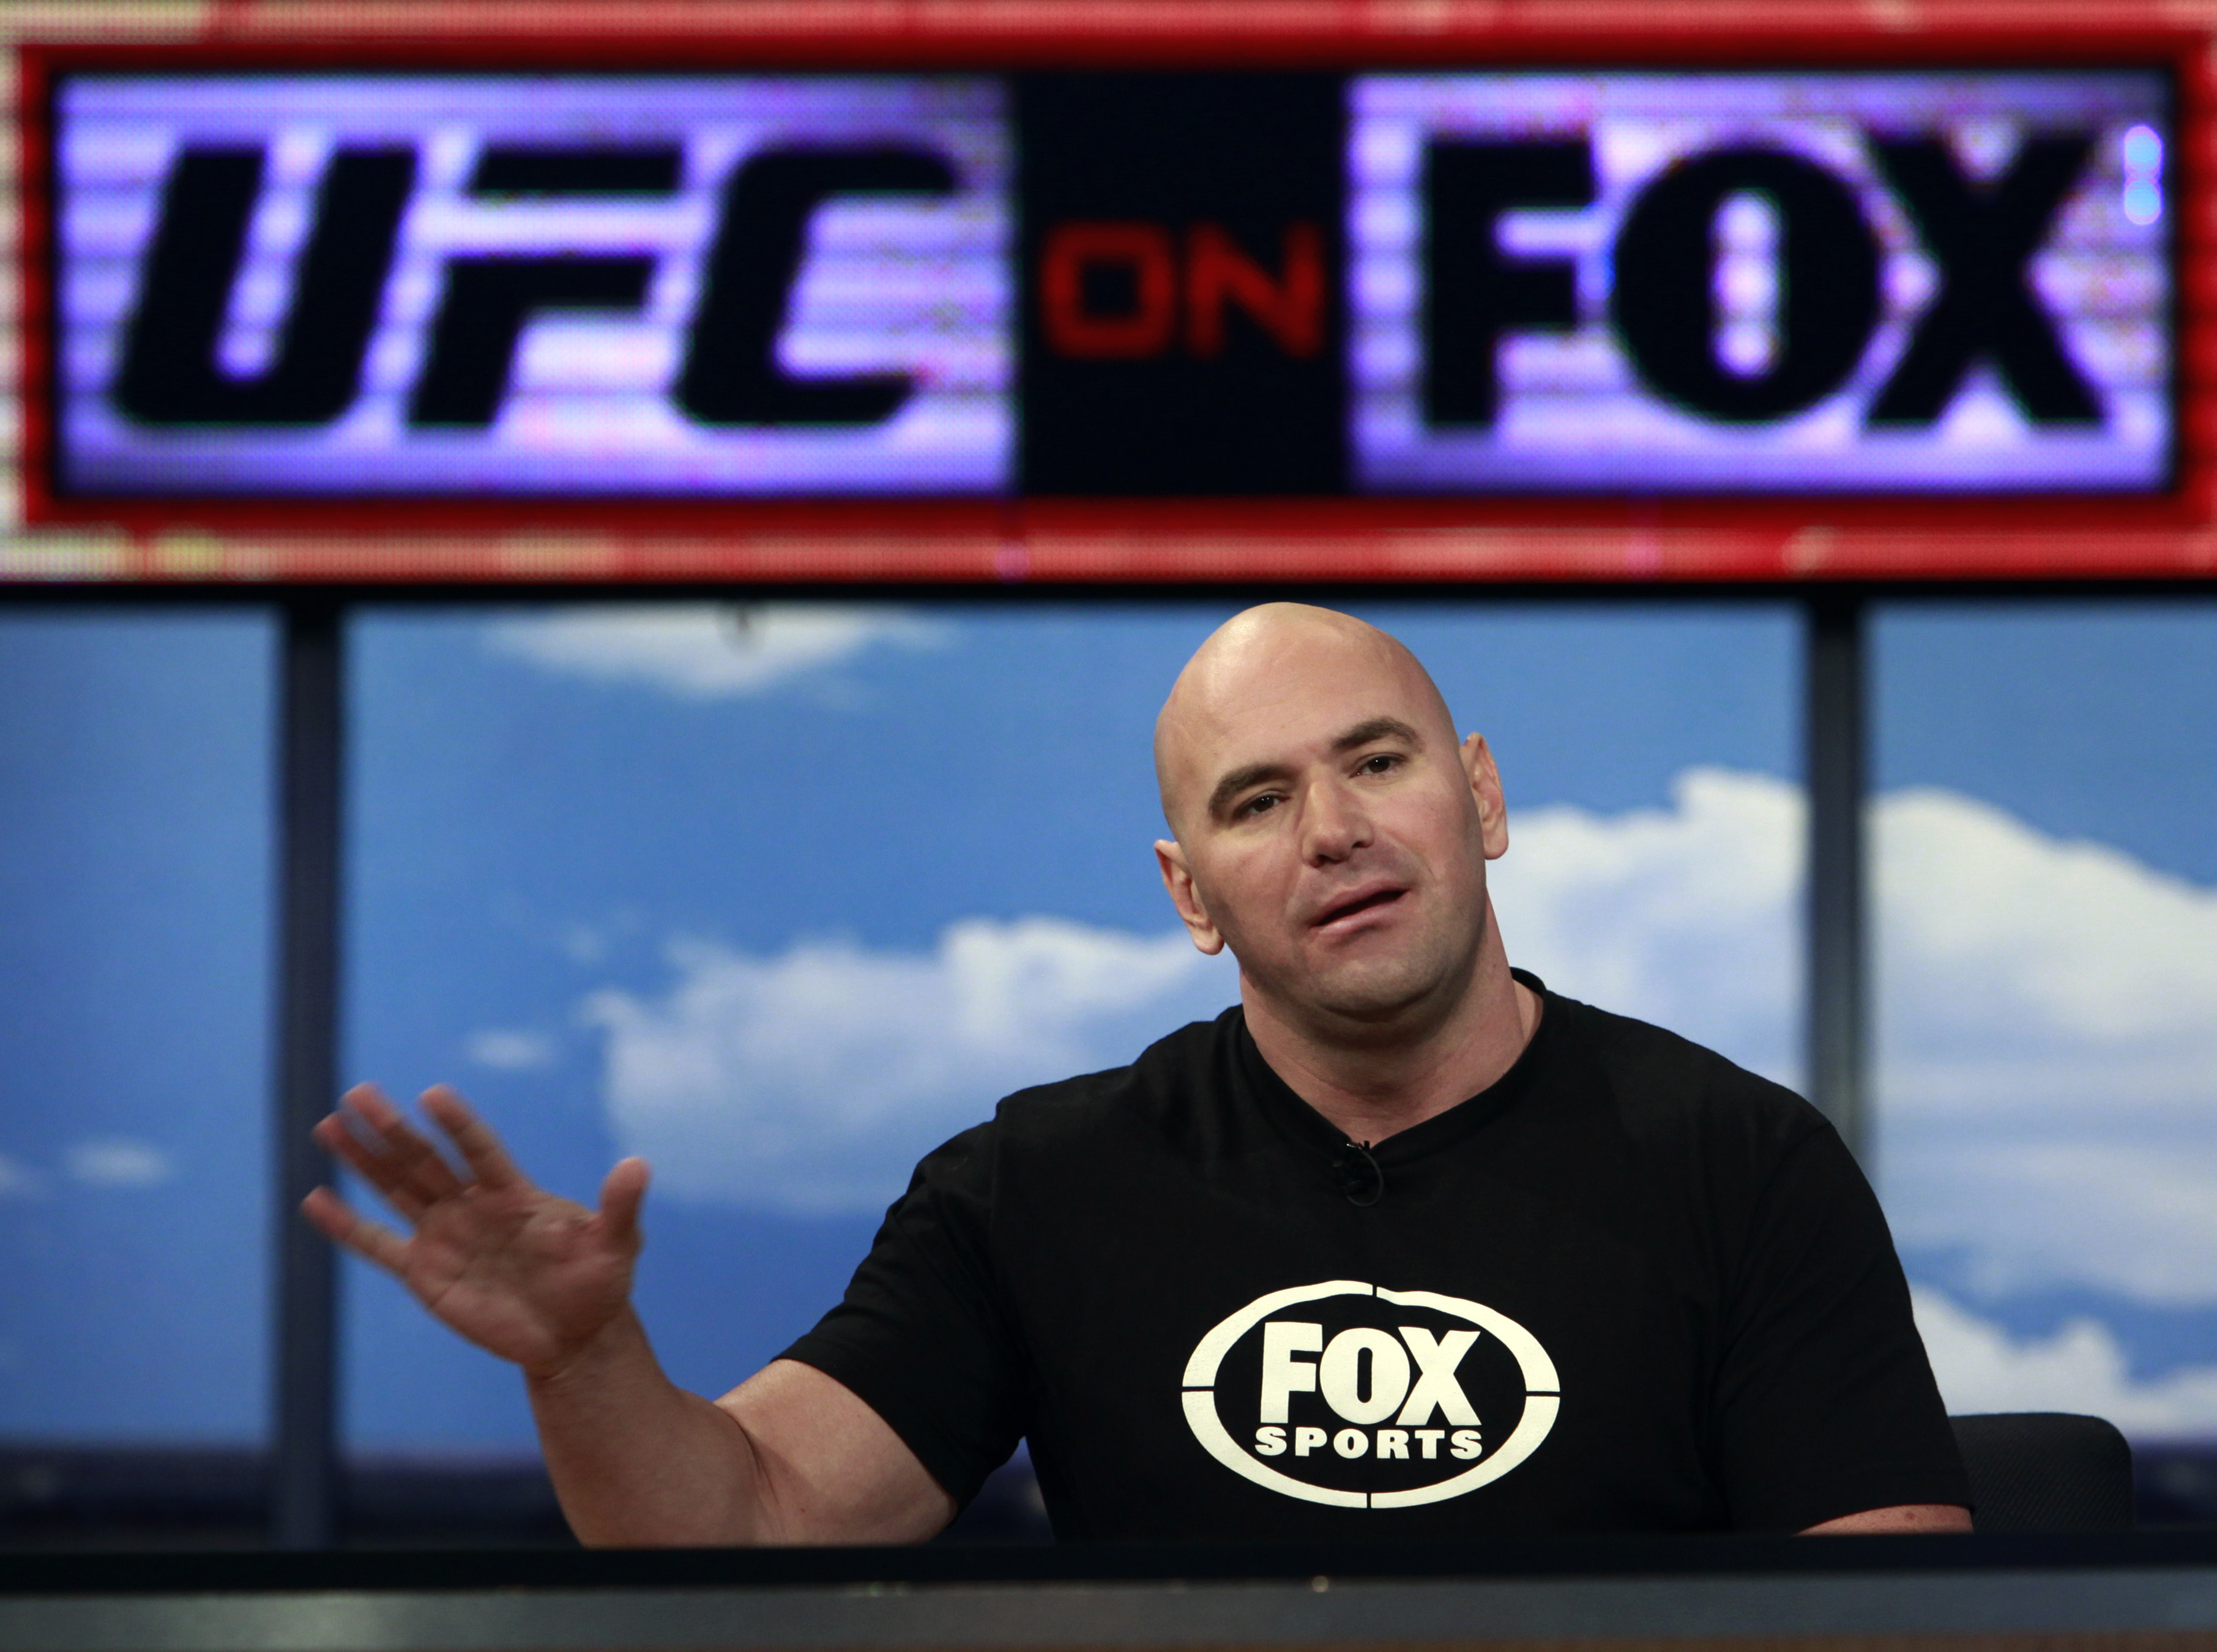 The UFC's partnership with Fox was considered one of the biggest days in company history. (AP)